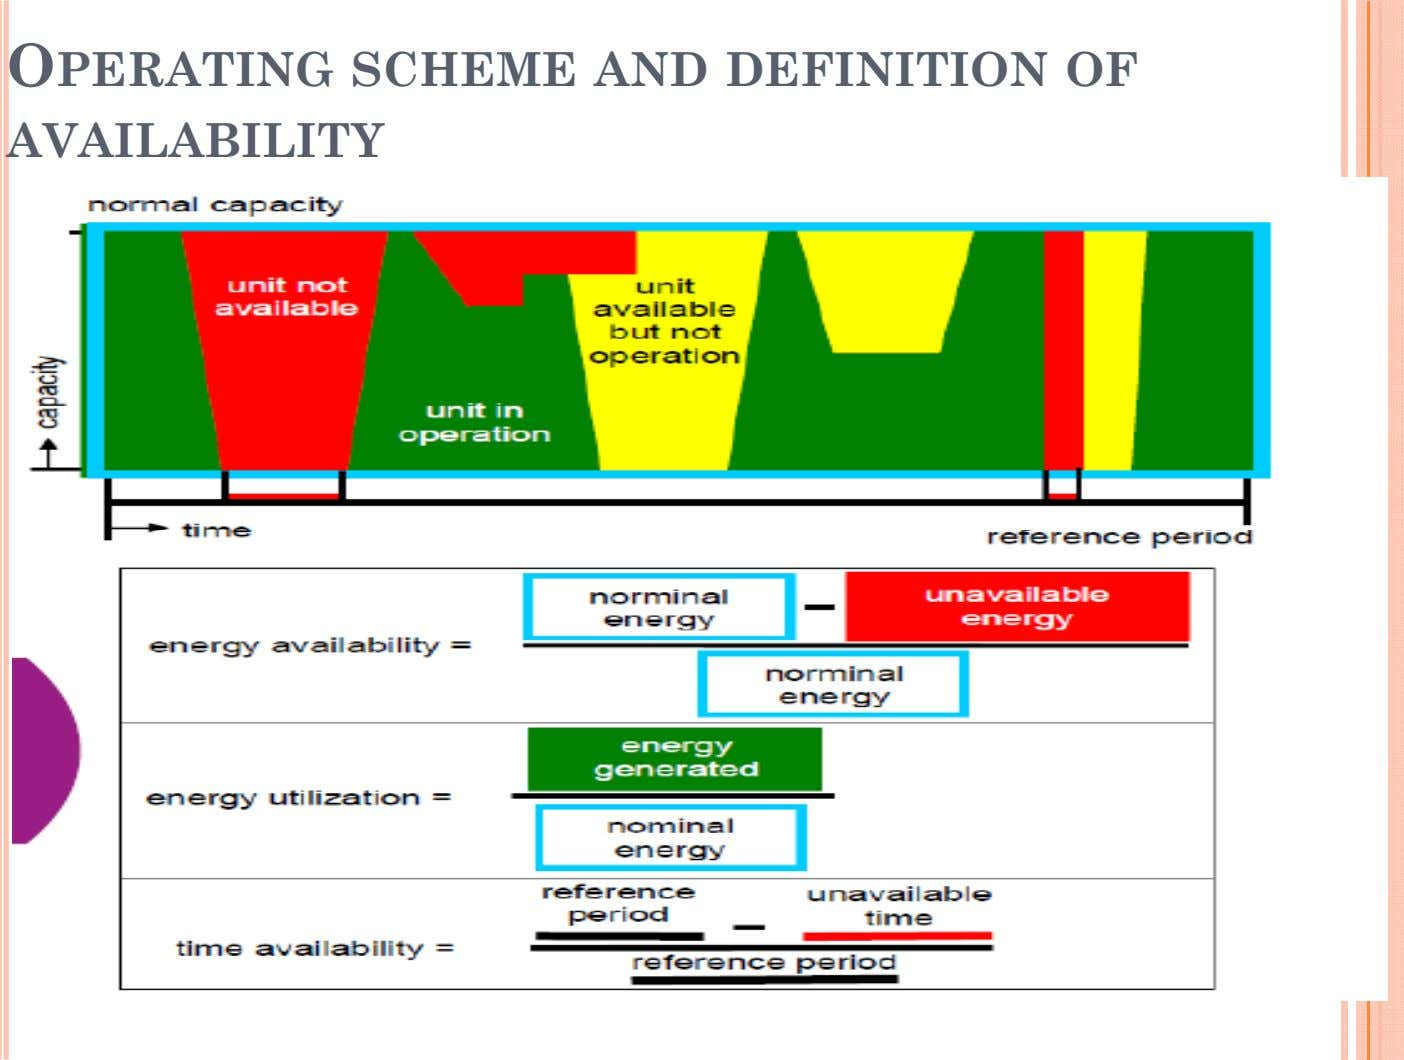 OPERATING SCHEME AND DEFINITION OF AVAILABILITY